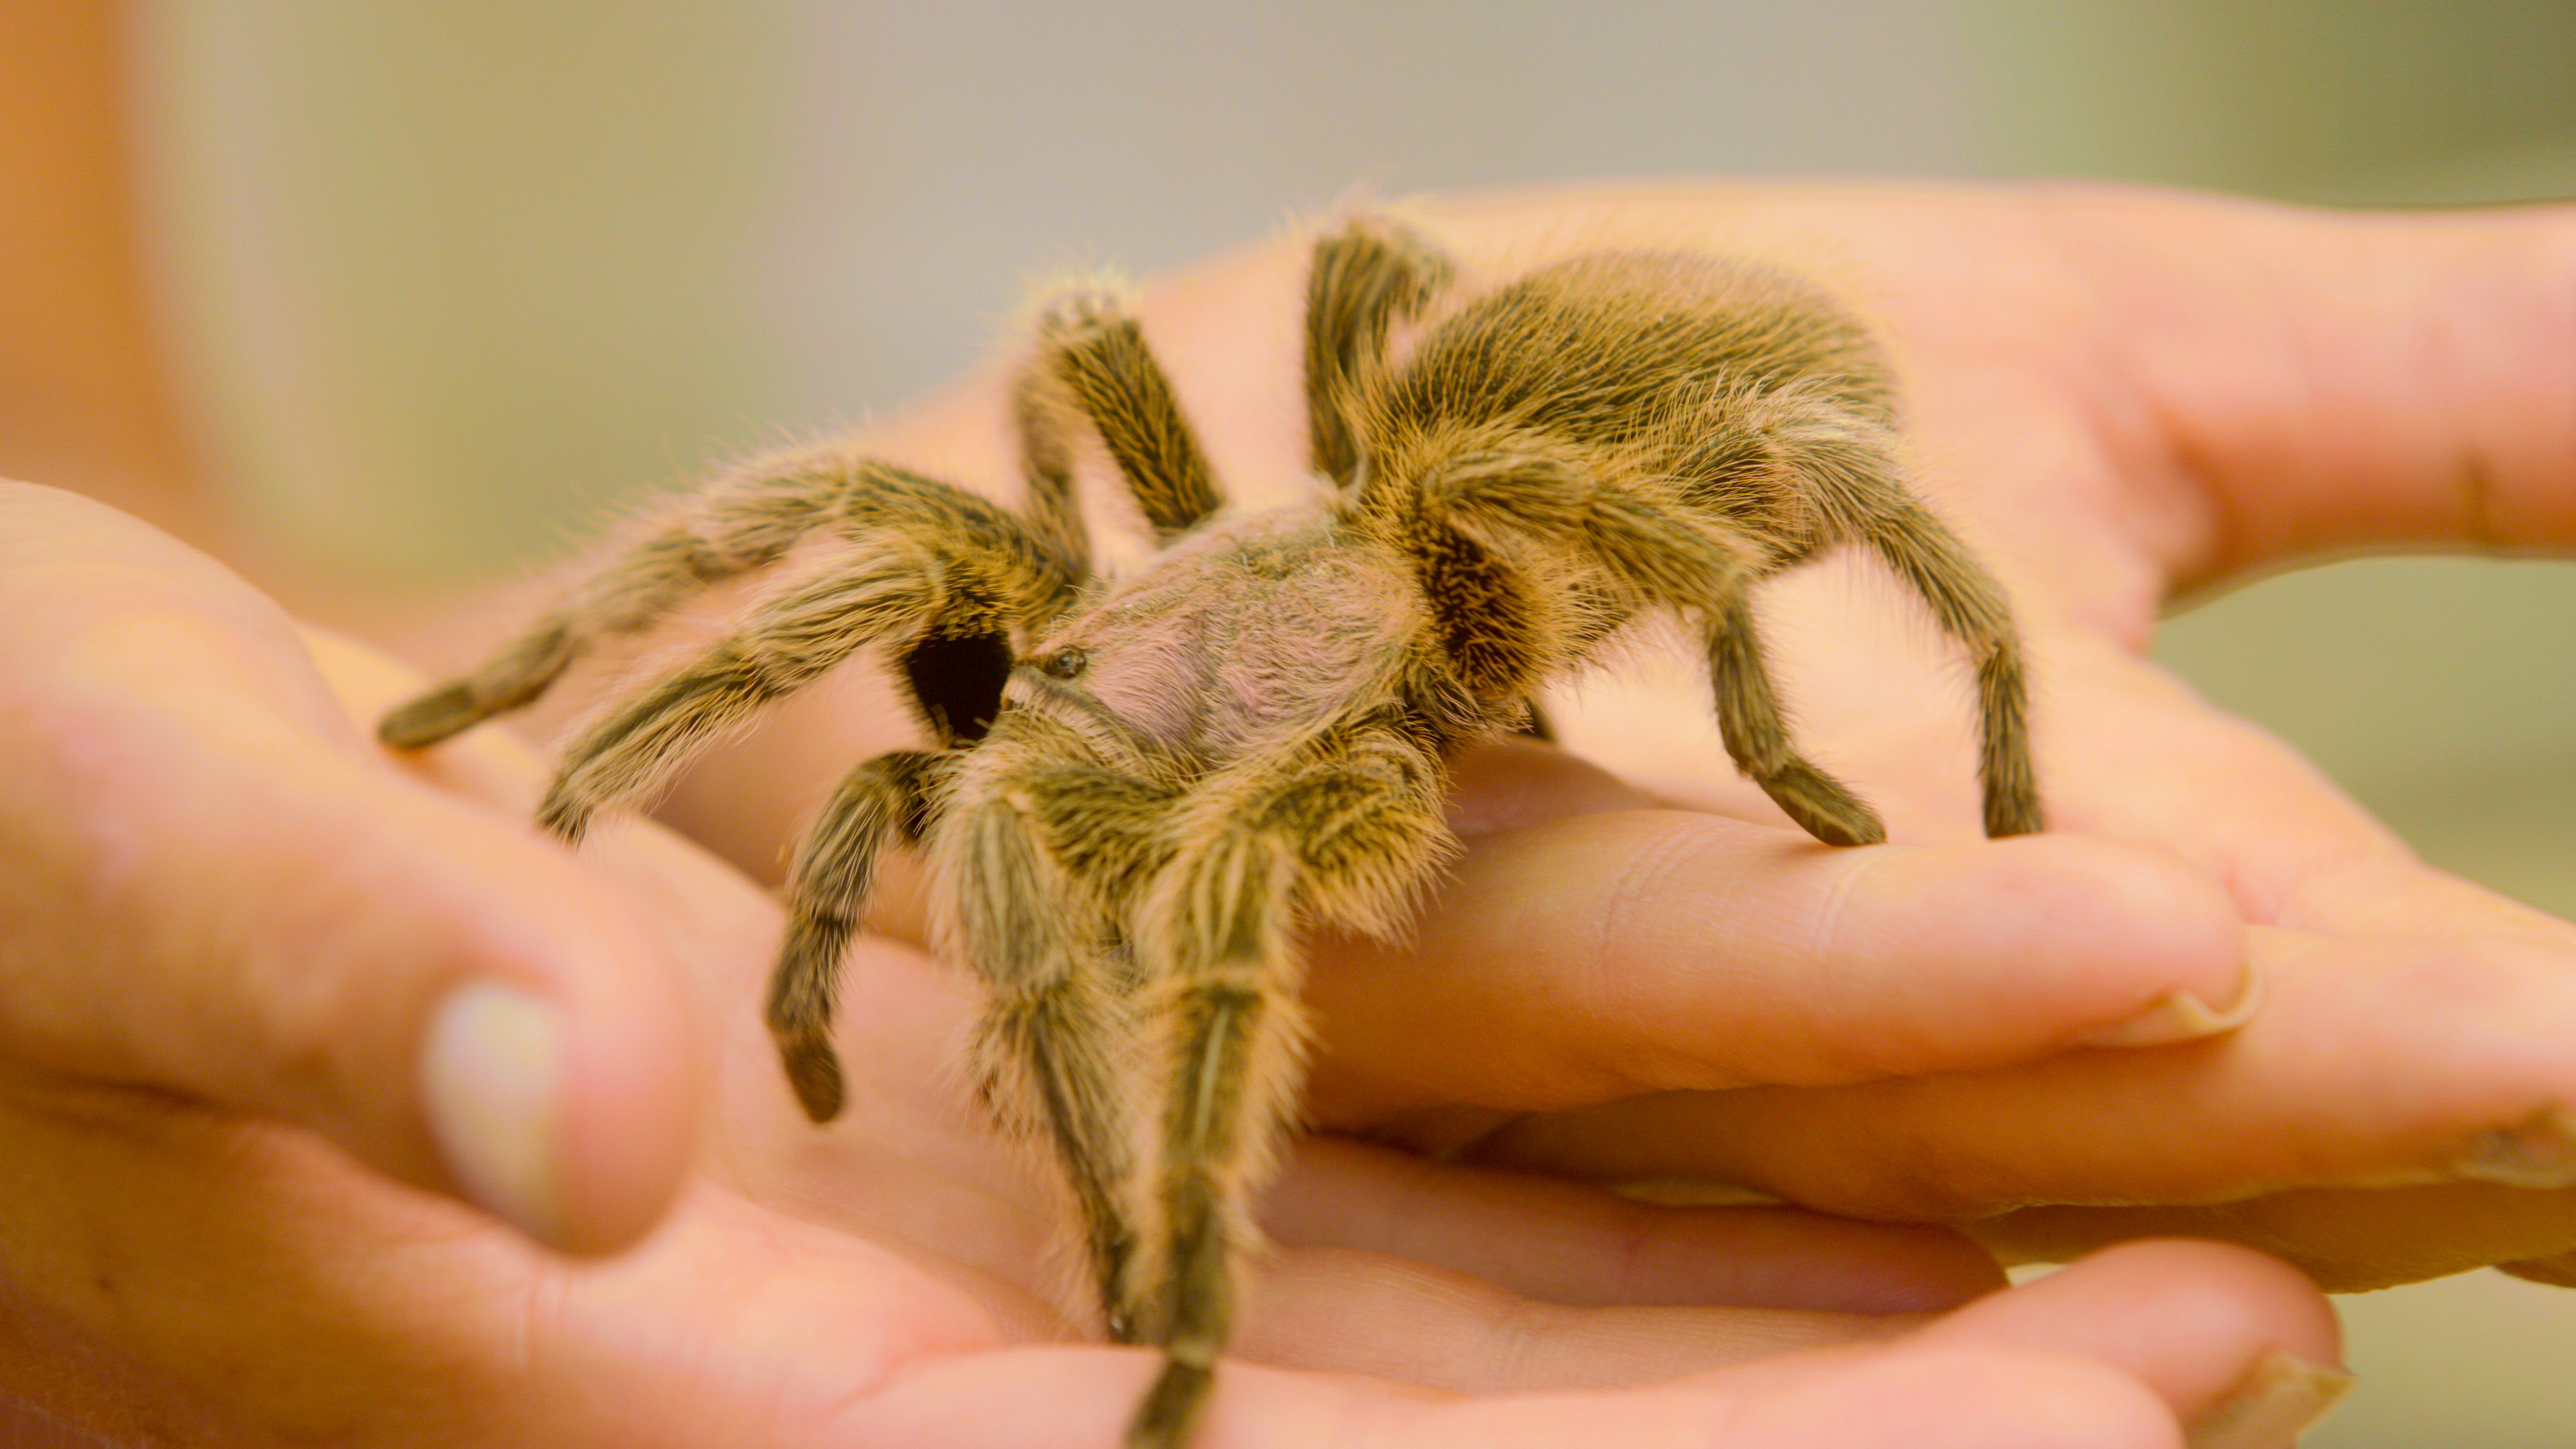 light tarantula walking on hand with its legs